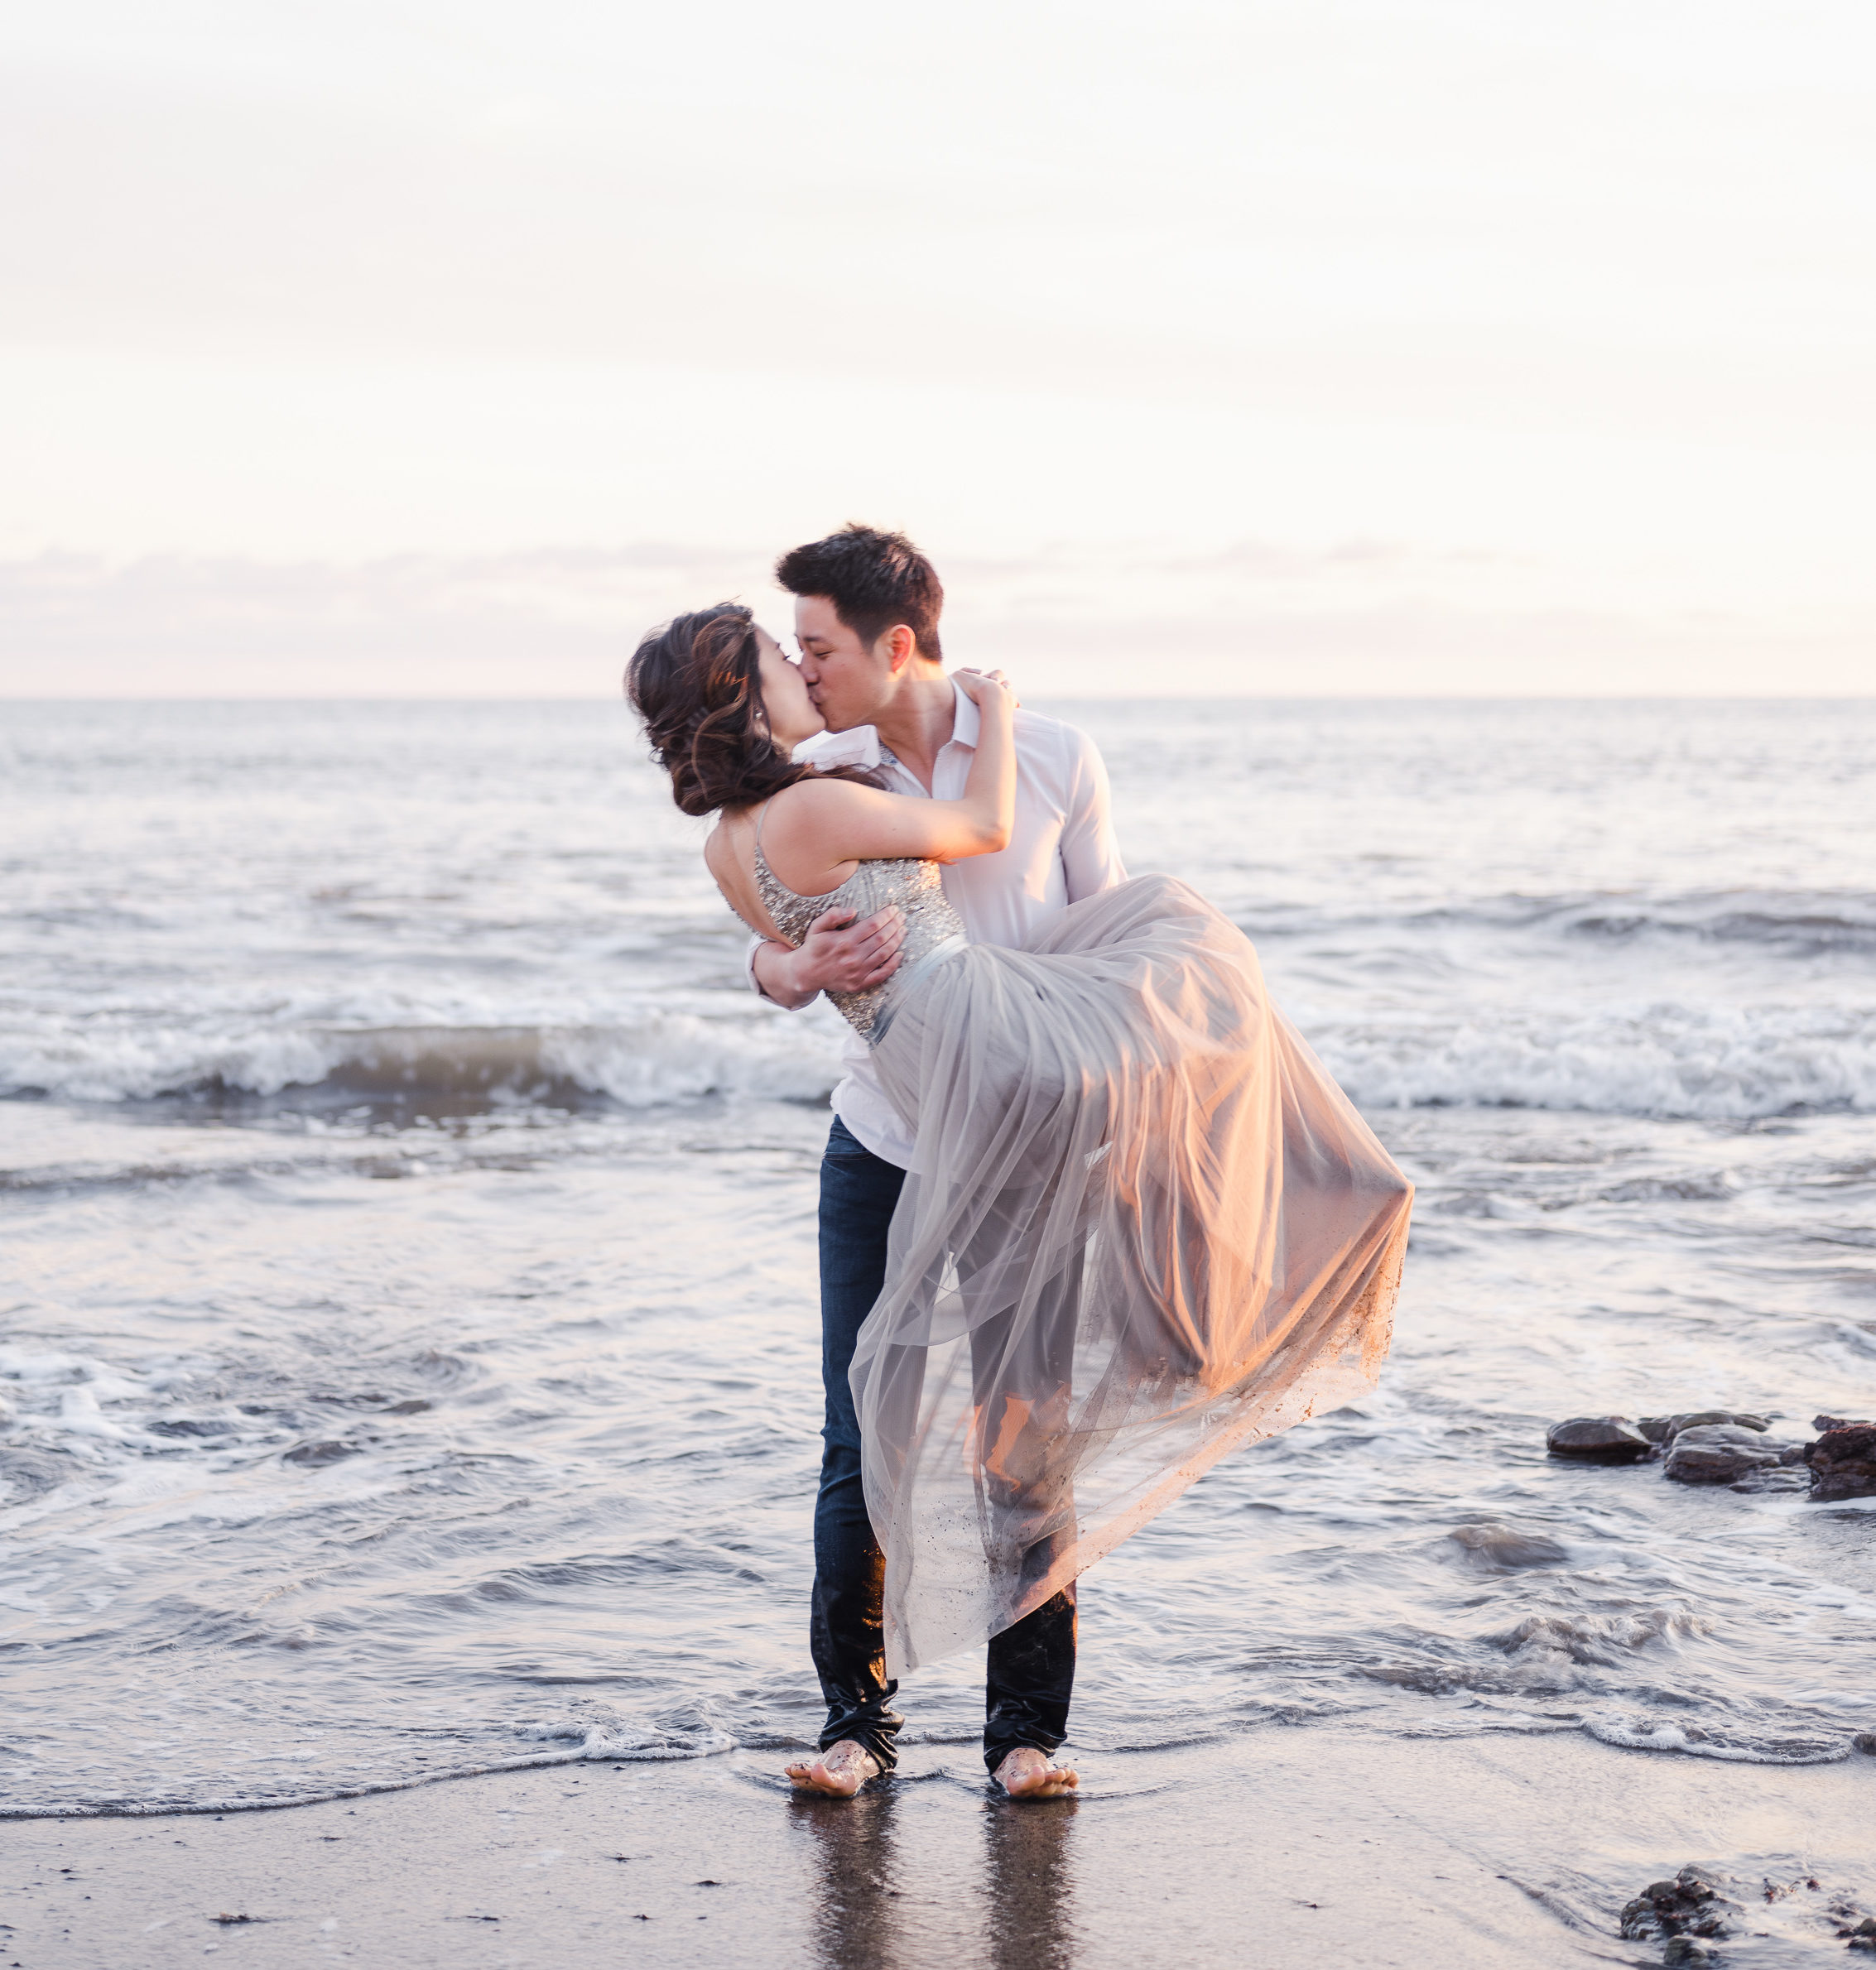 Man holding woman in his arms kissing on the beach in the waves